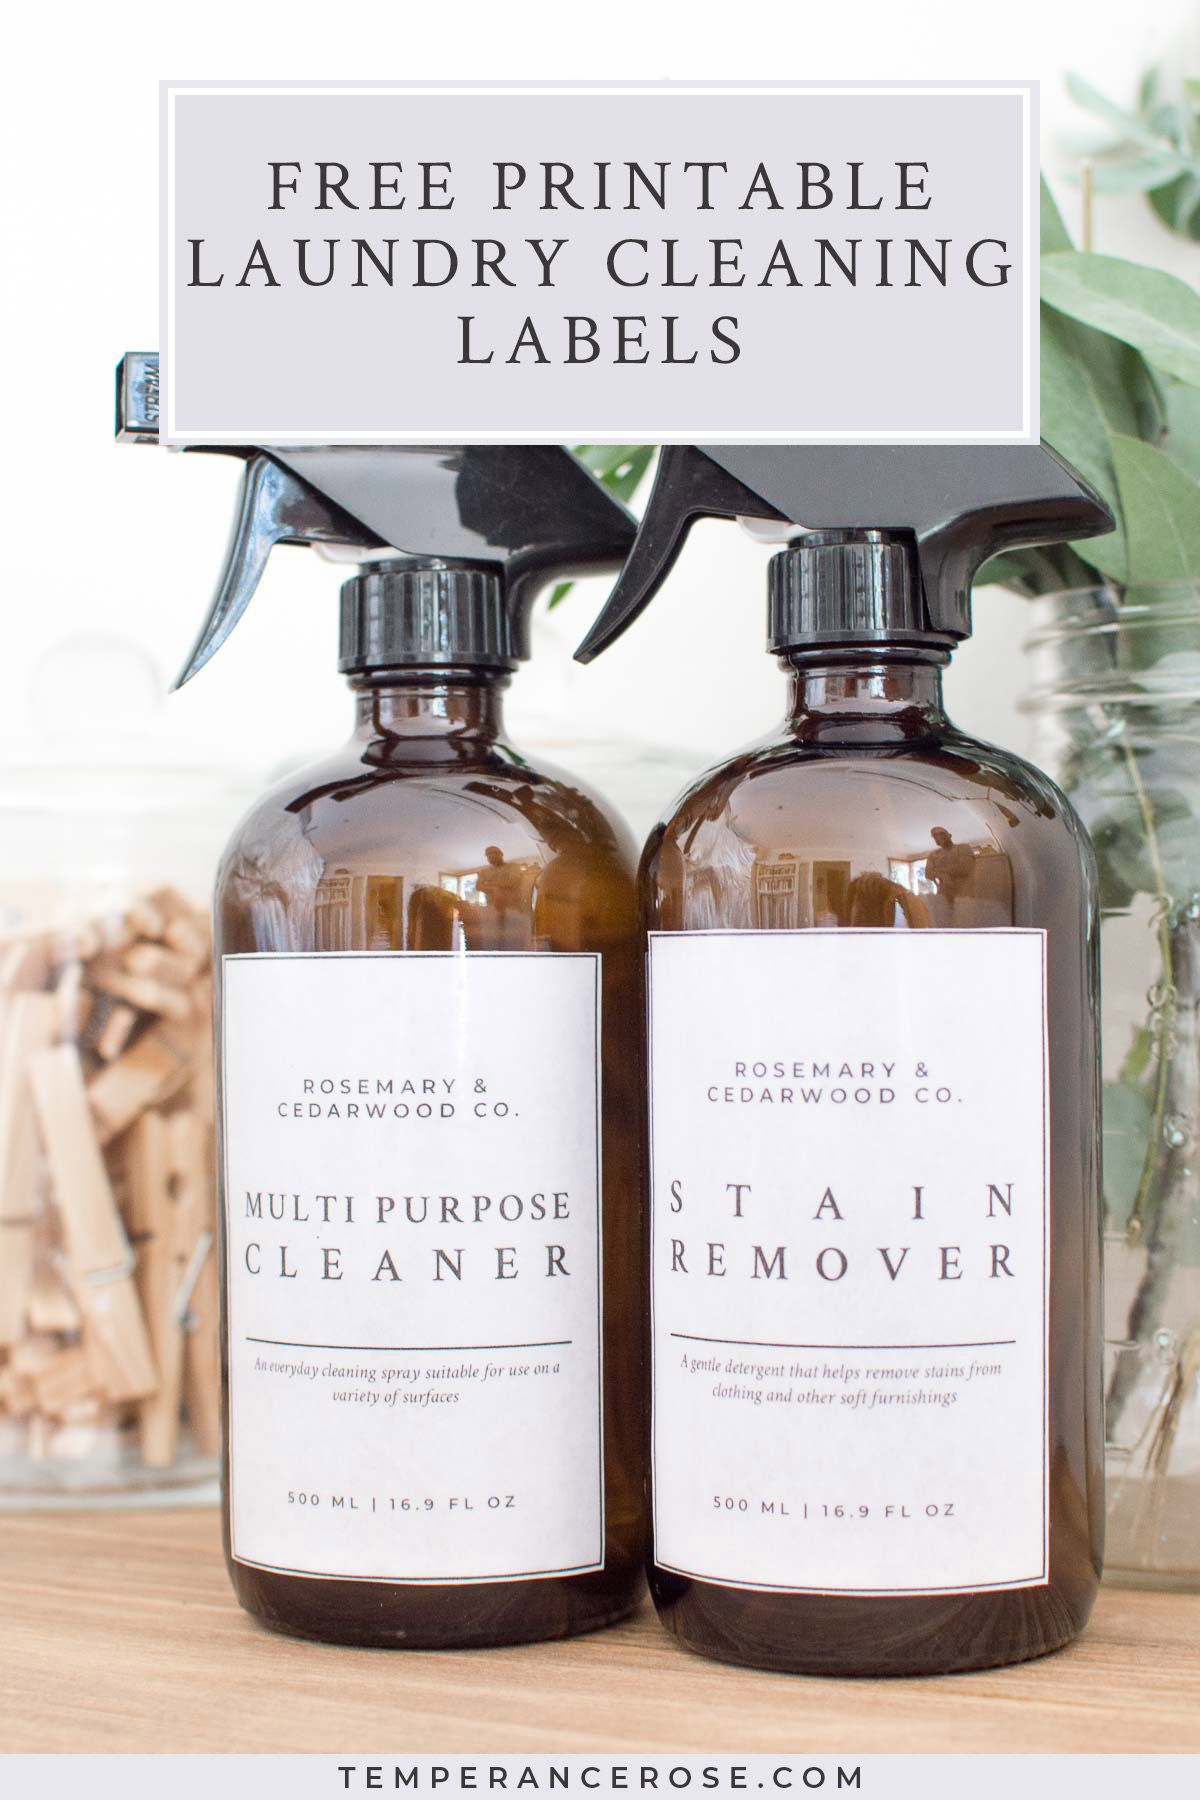 Free Printable Laundry Cleaning Labels To Help You Organise Your